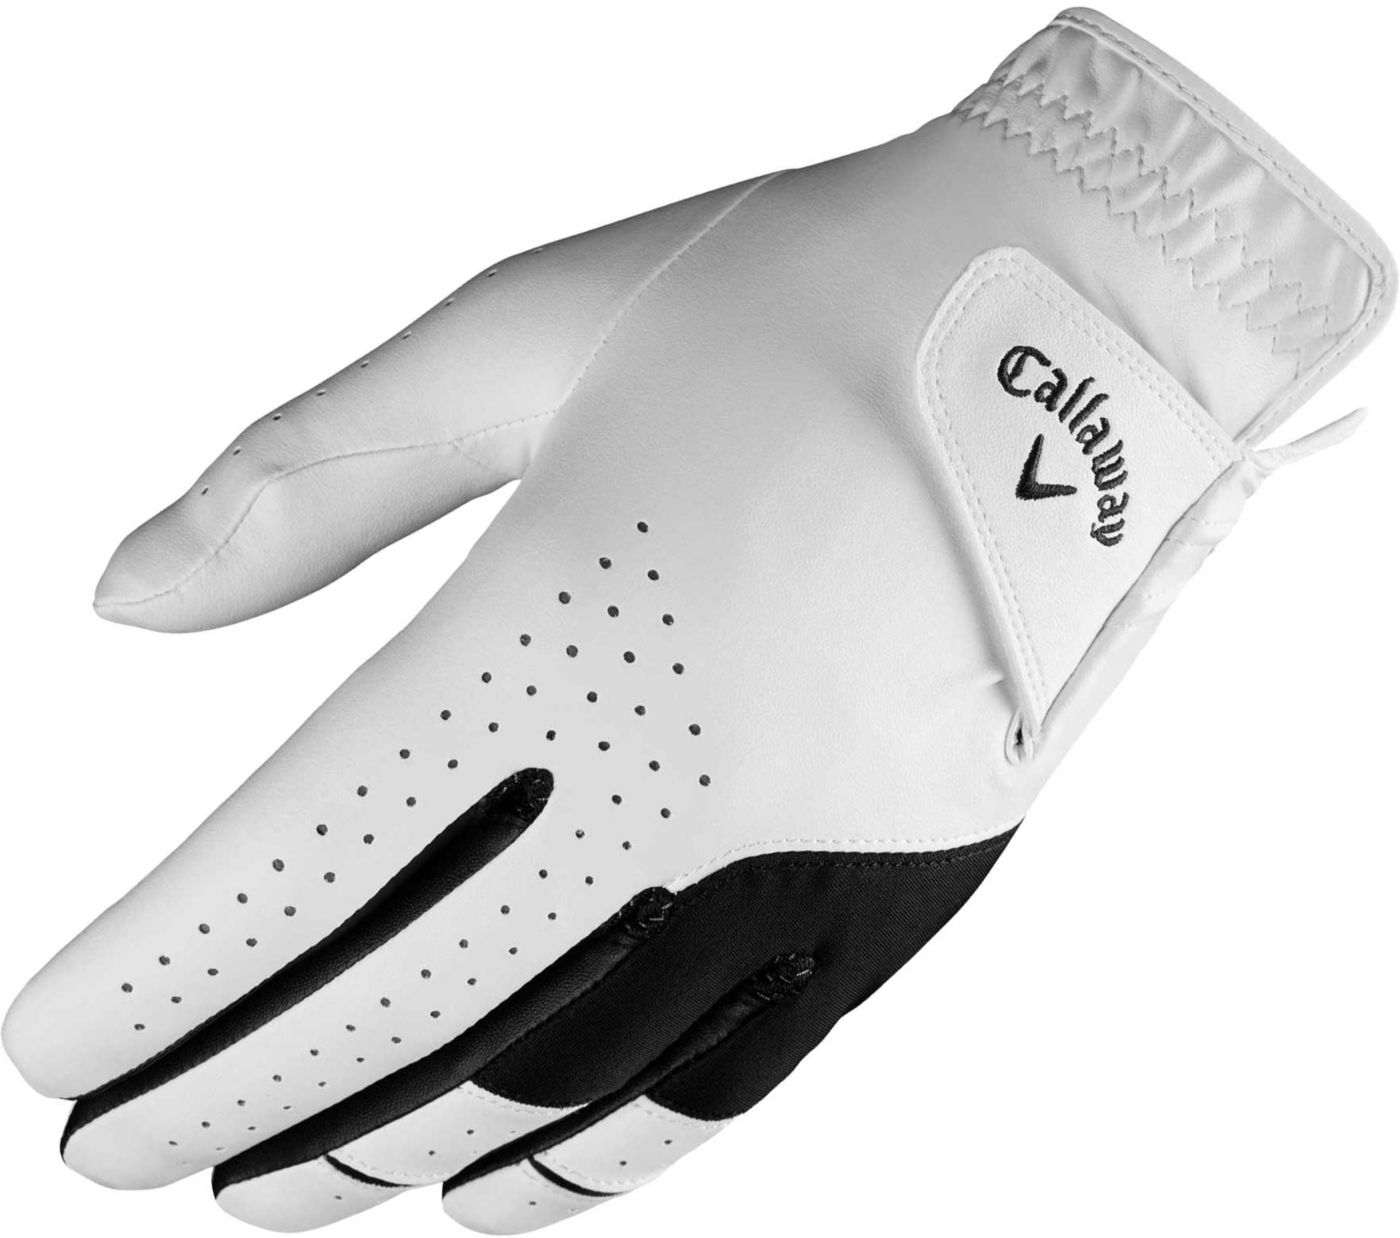 Callaway Men's Weather Spann Golf Gloves – 2 Pack